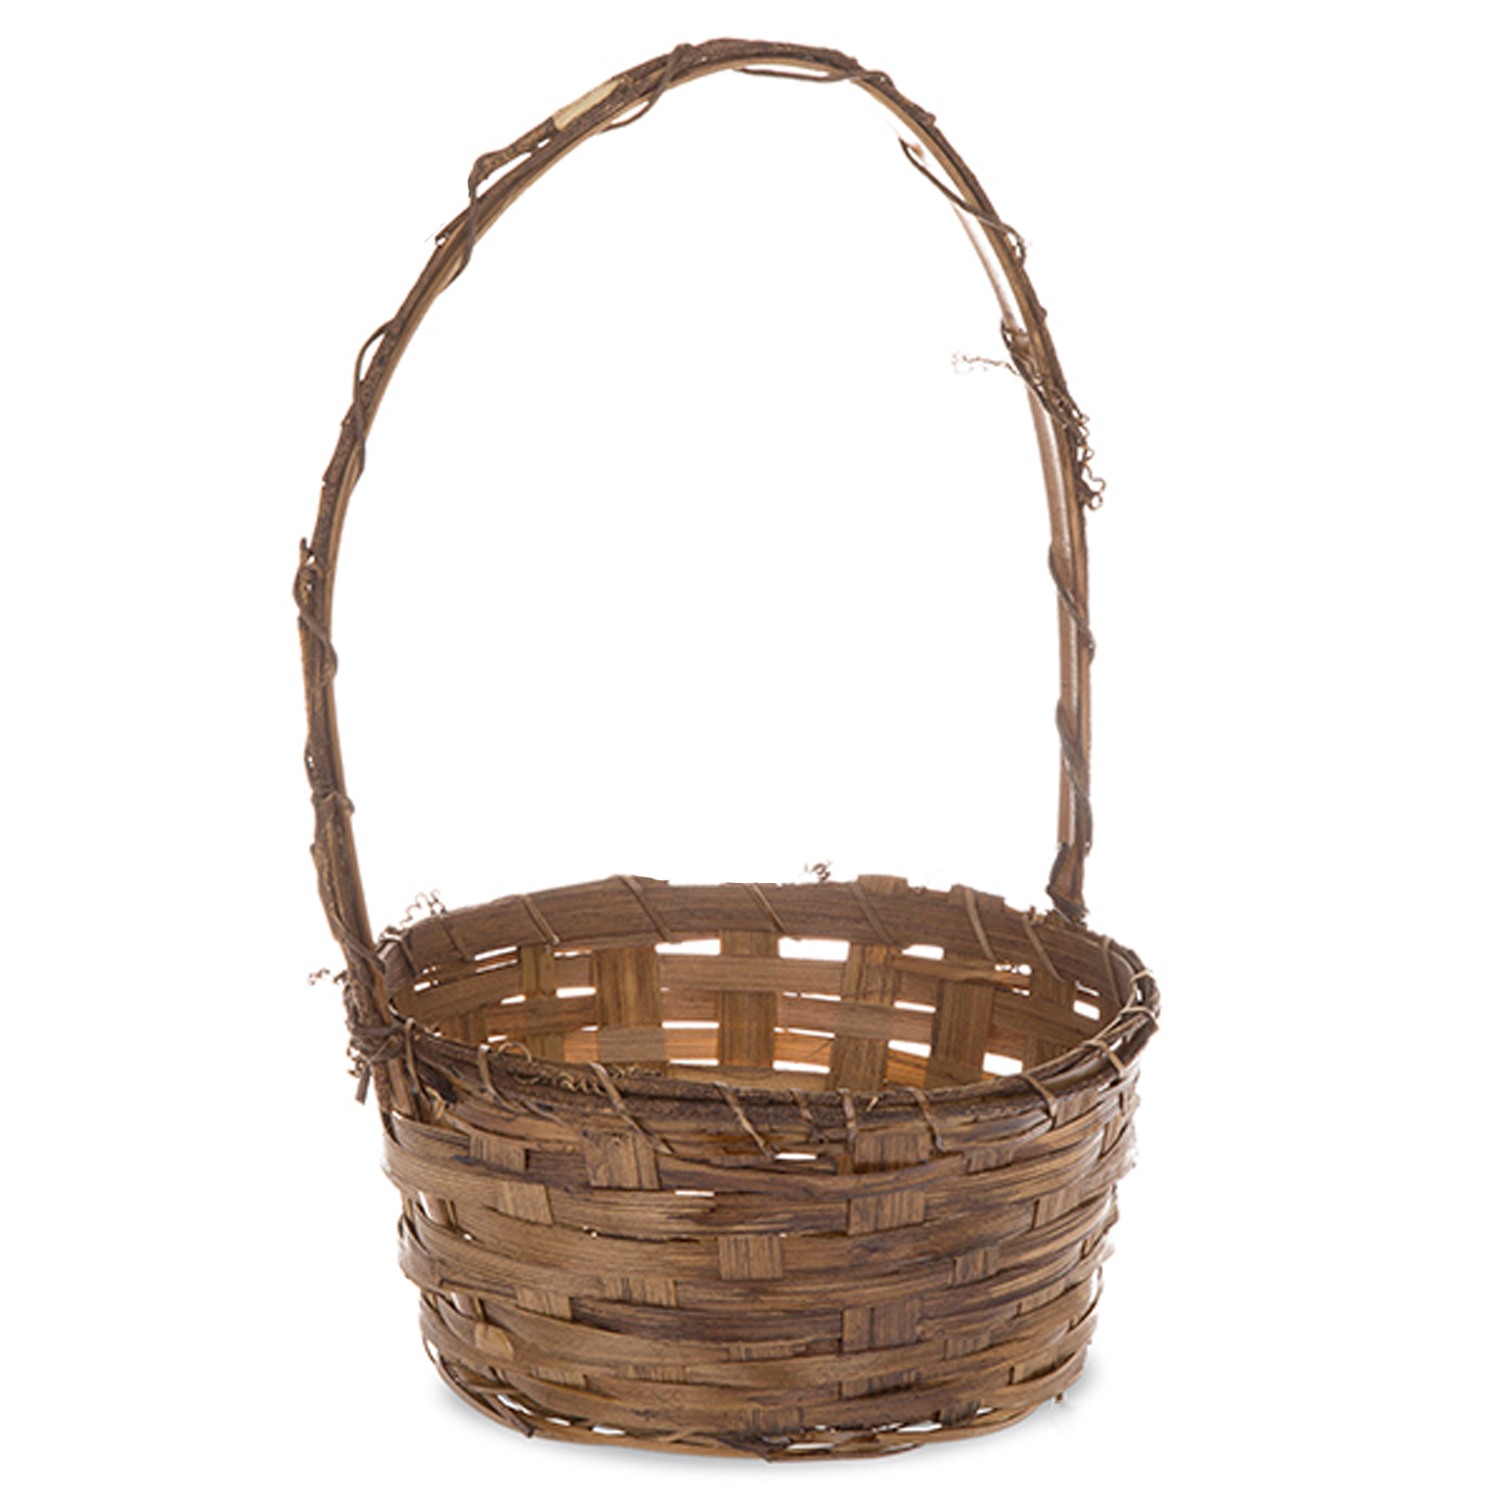 Bamboo Bark Rim With Handle Basket Small The Lucky